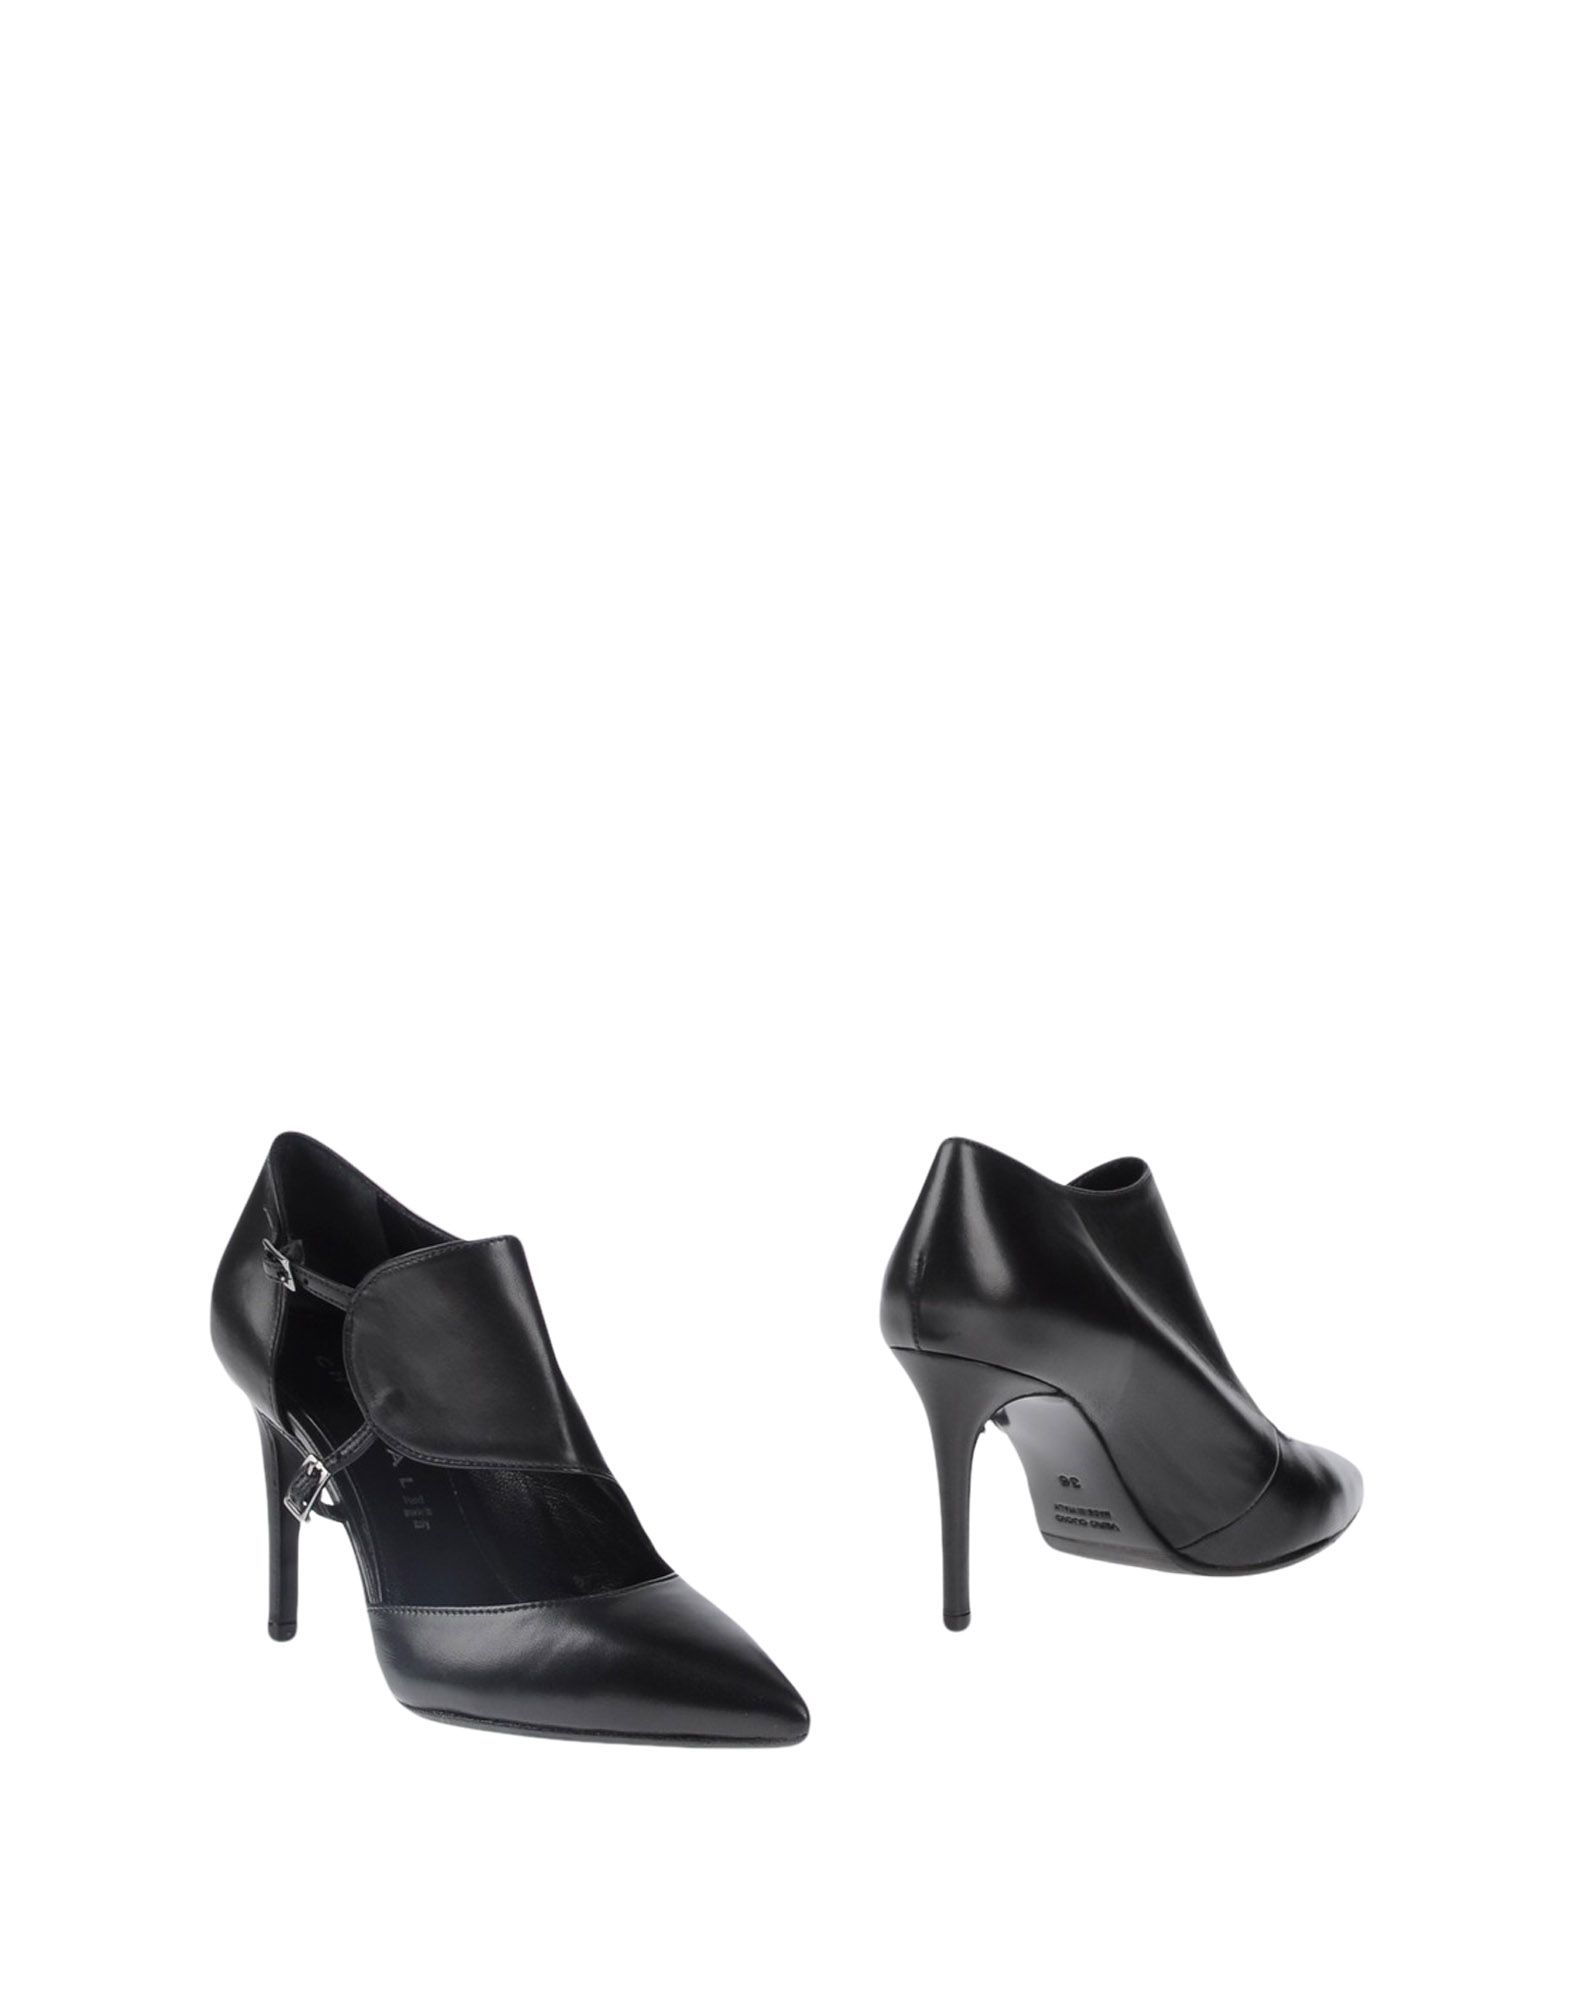 Chantal Ankle Boot Boots - Women Chantal Ankle Boots Boot online on  Australia - 11041868OG 5ee552